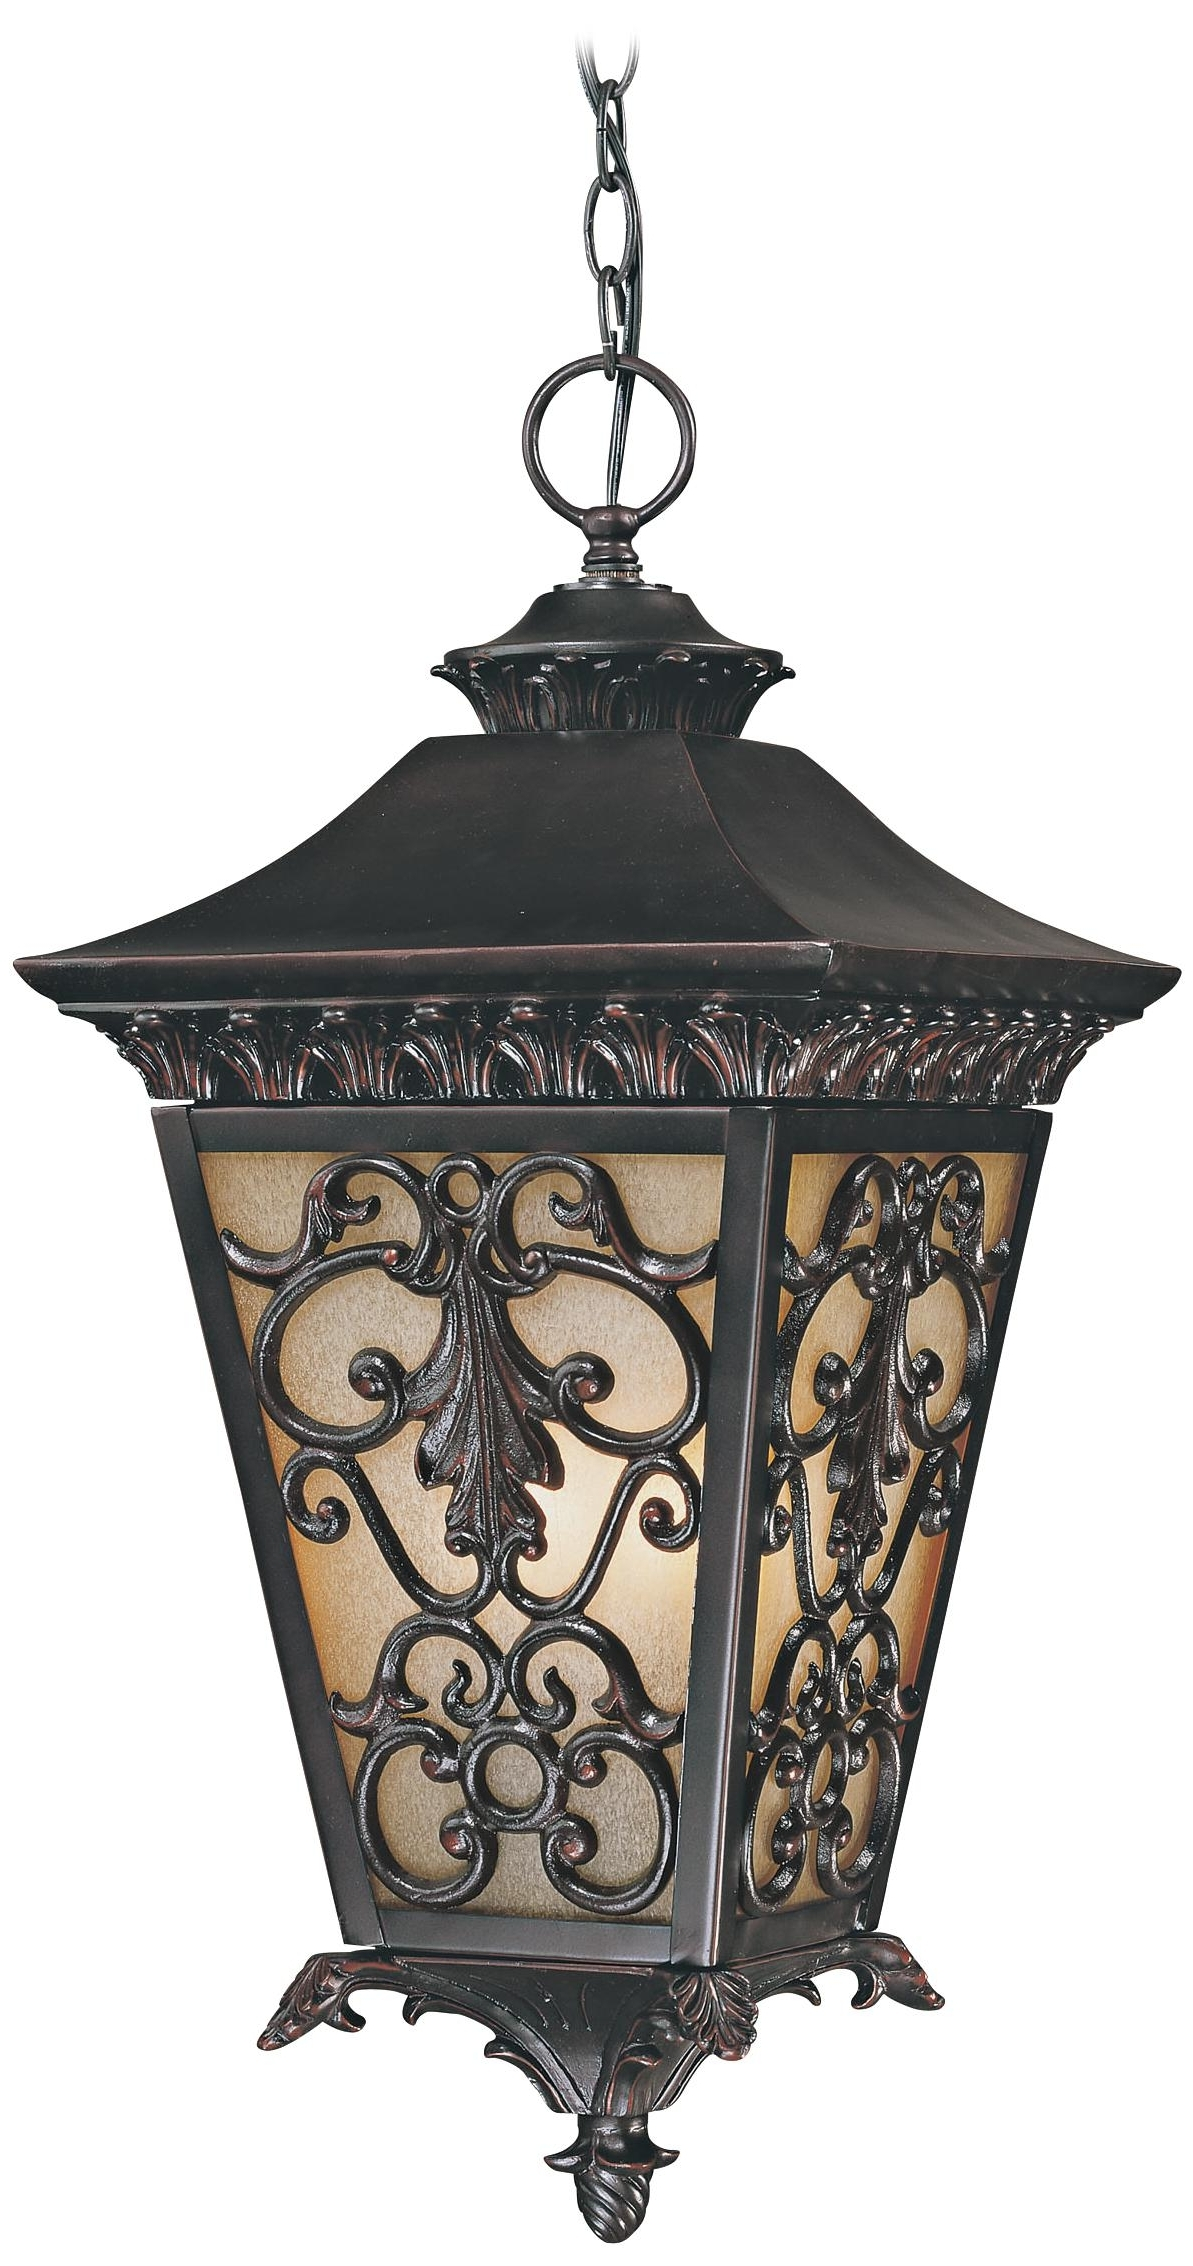 Tuscan Old Throughout Latest Outdoor Hanging Wall Lanterns (View 20 of 20)